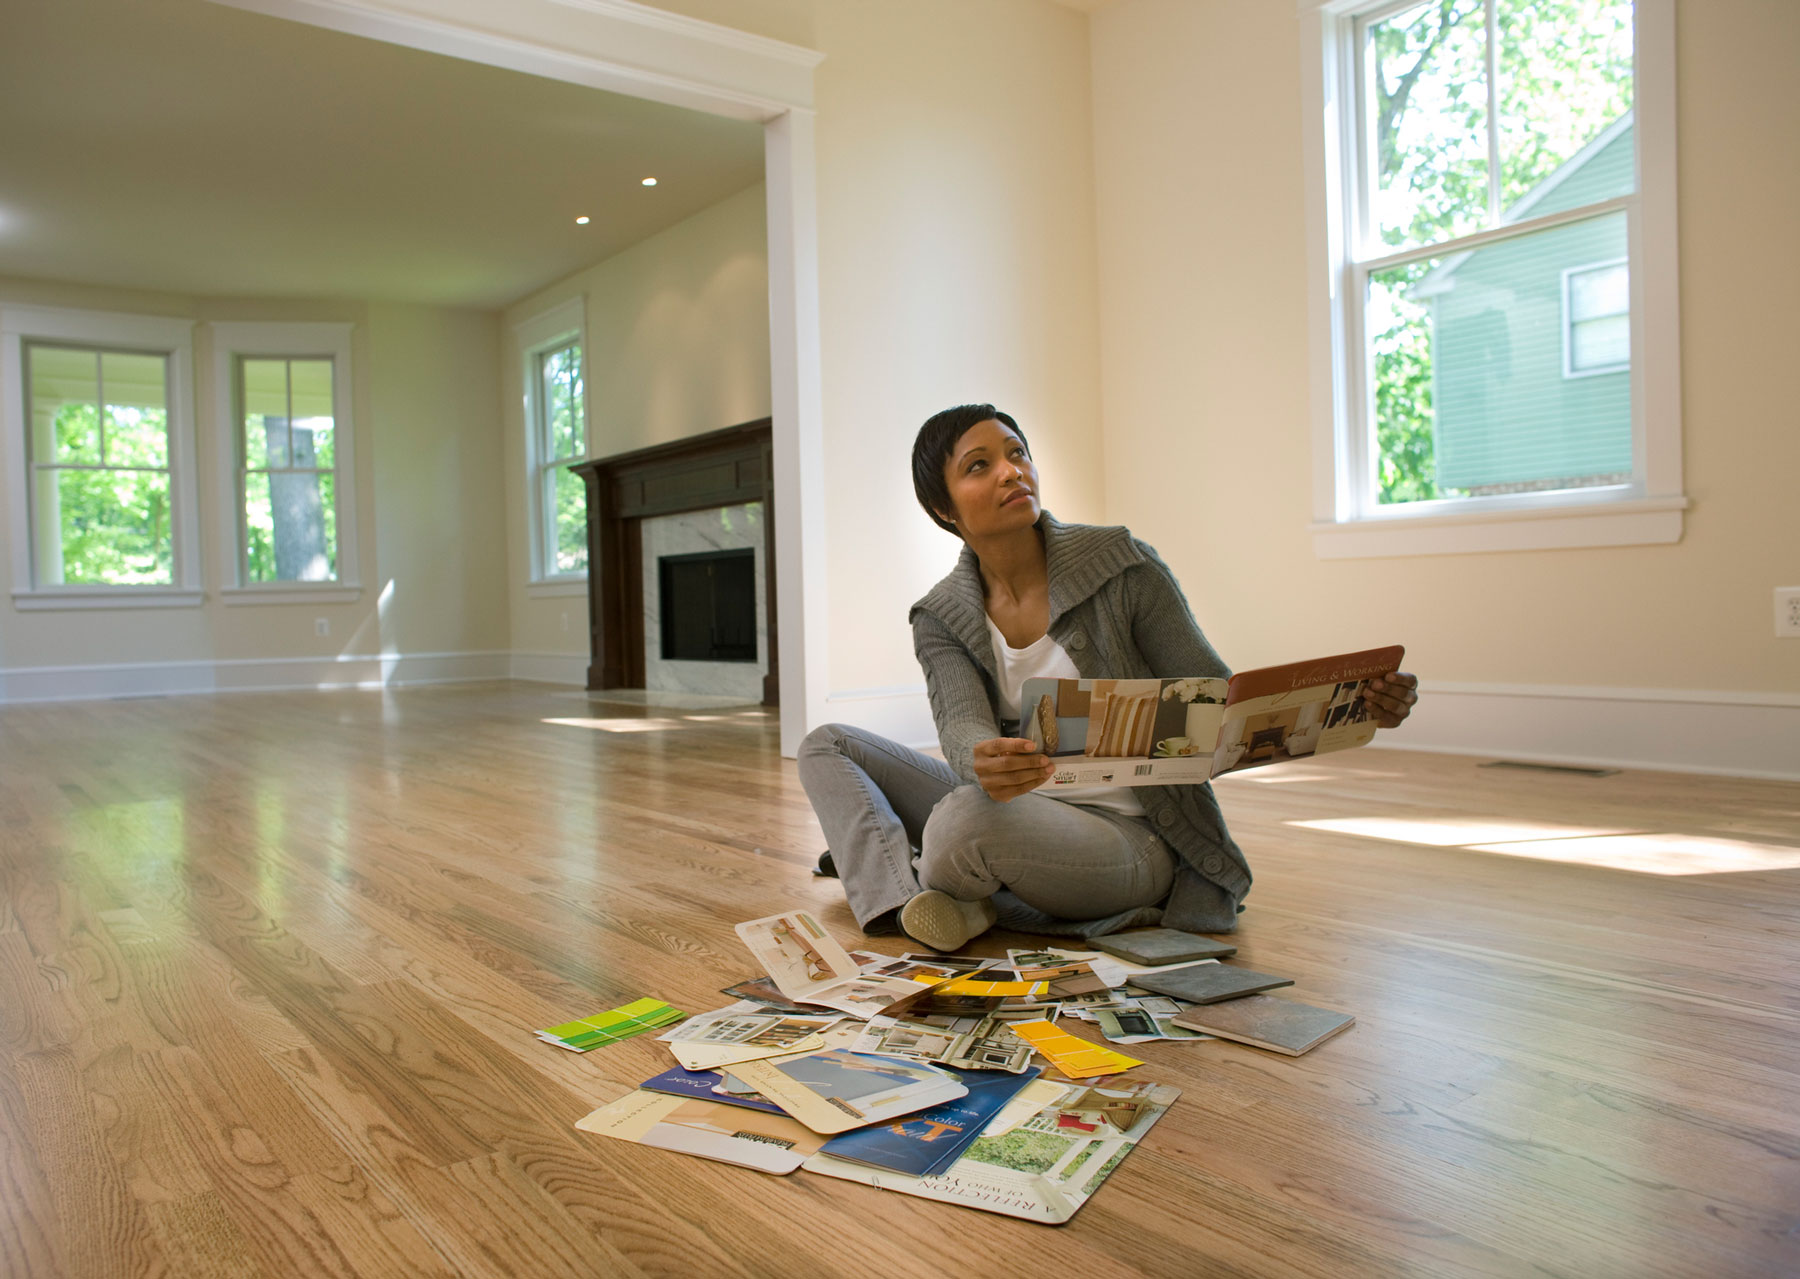 Woman preparing to decorate a room - making a mood board